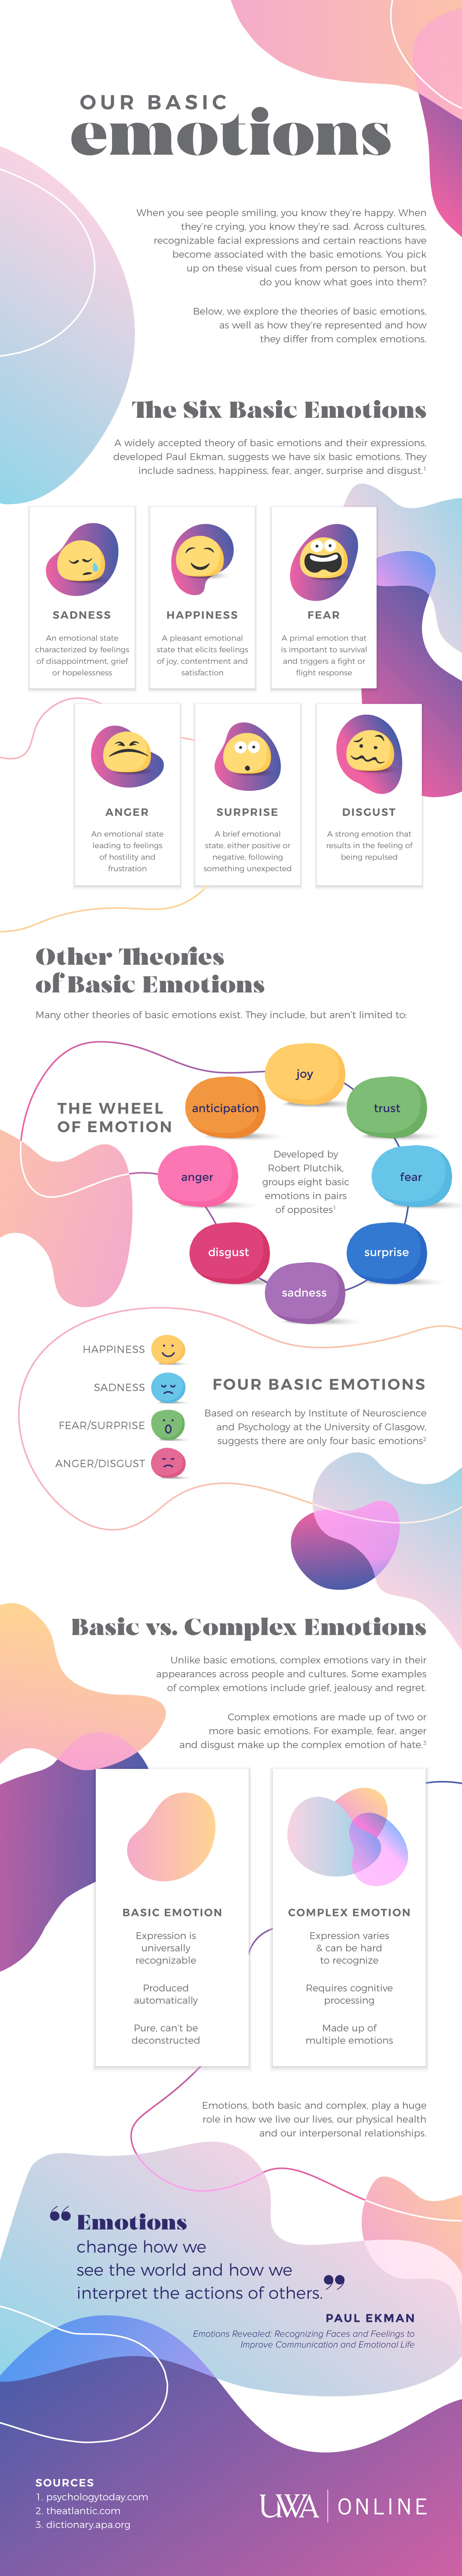 Our Basic Emotions Infographic List Of Human Emotions Uwa Online